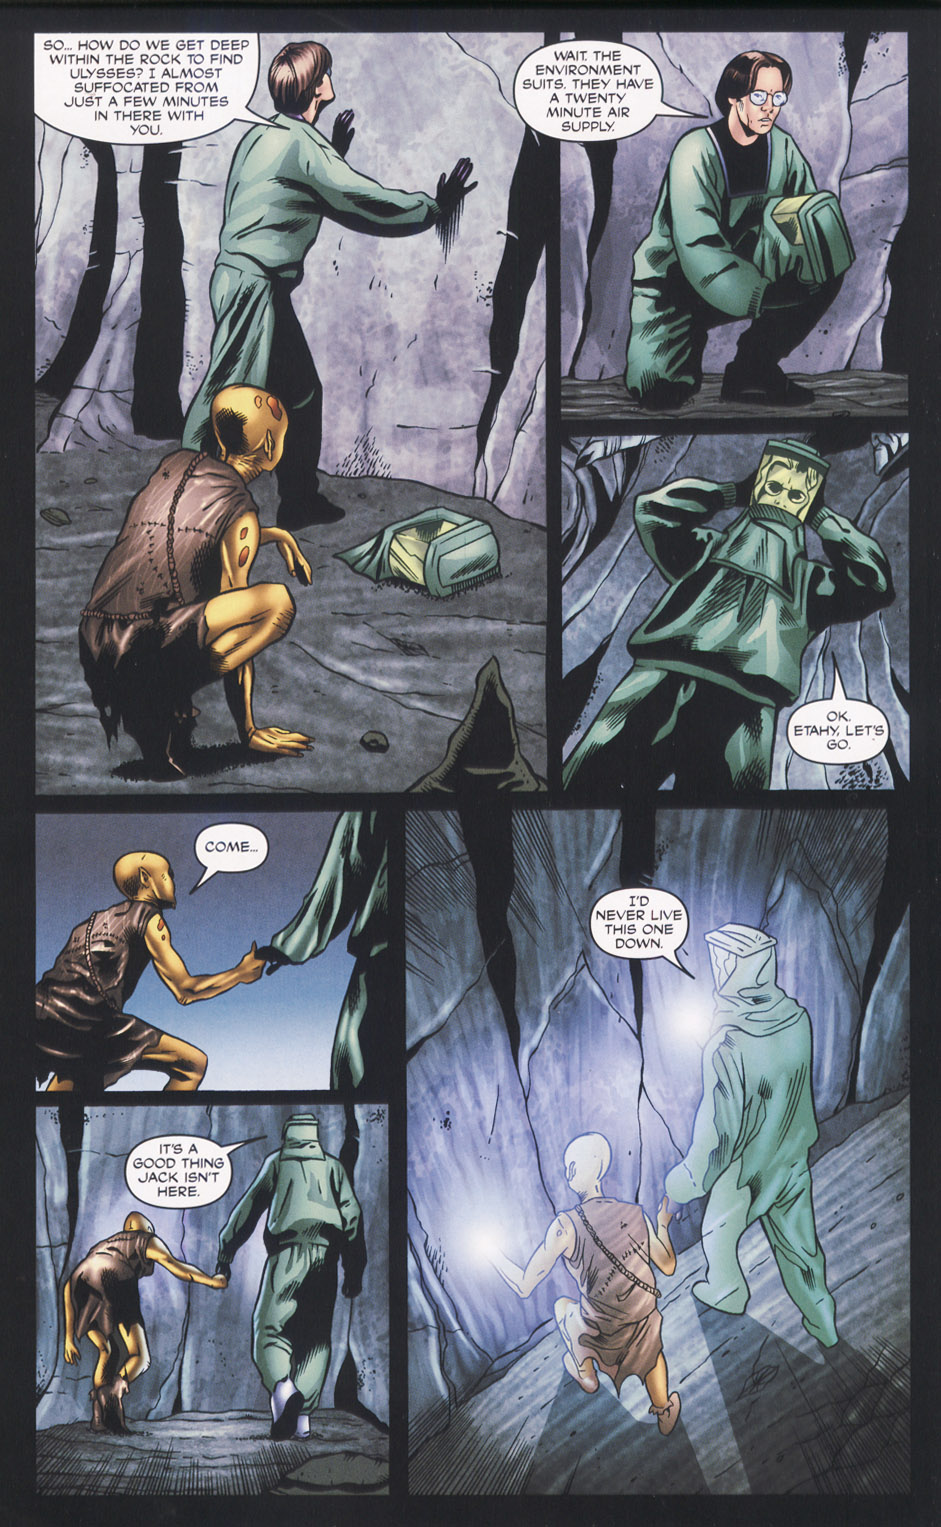 Read online Stargate SG-1: Fall of Rome comic -  Issue #2 - 18